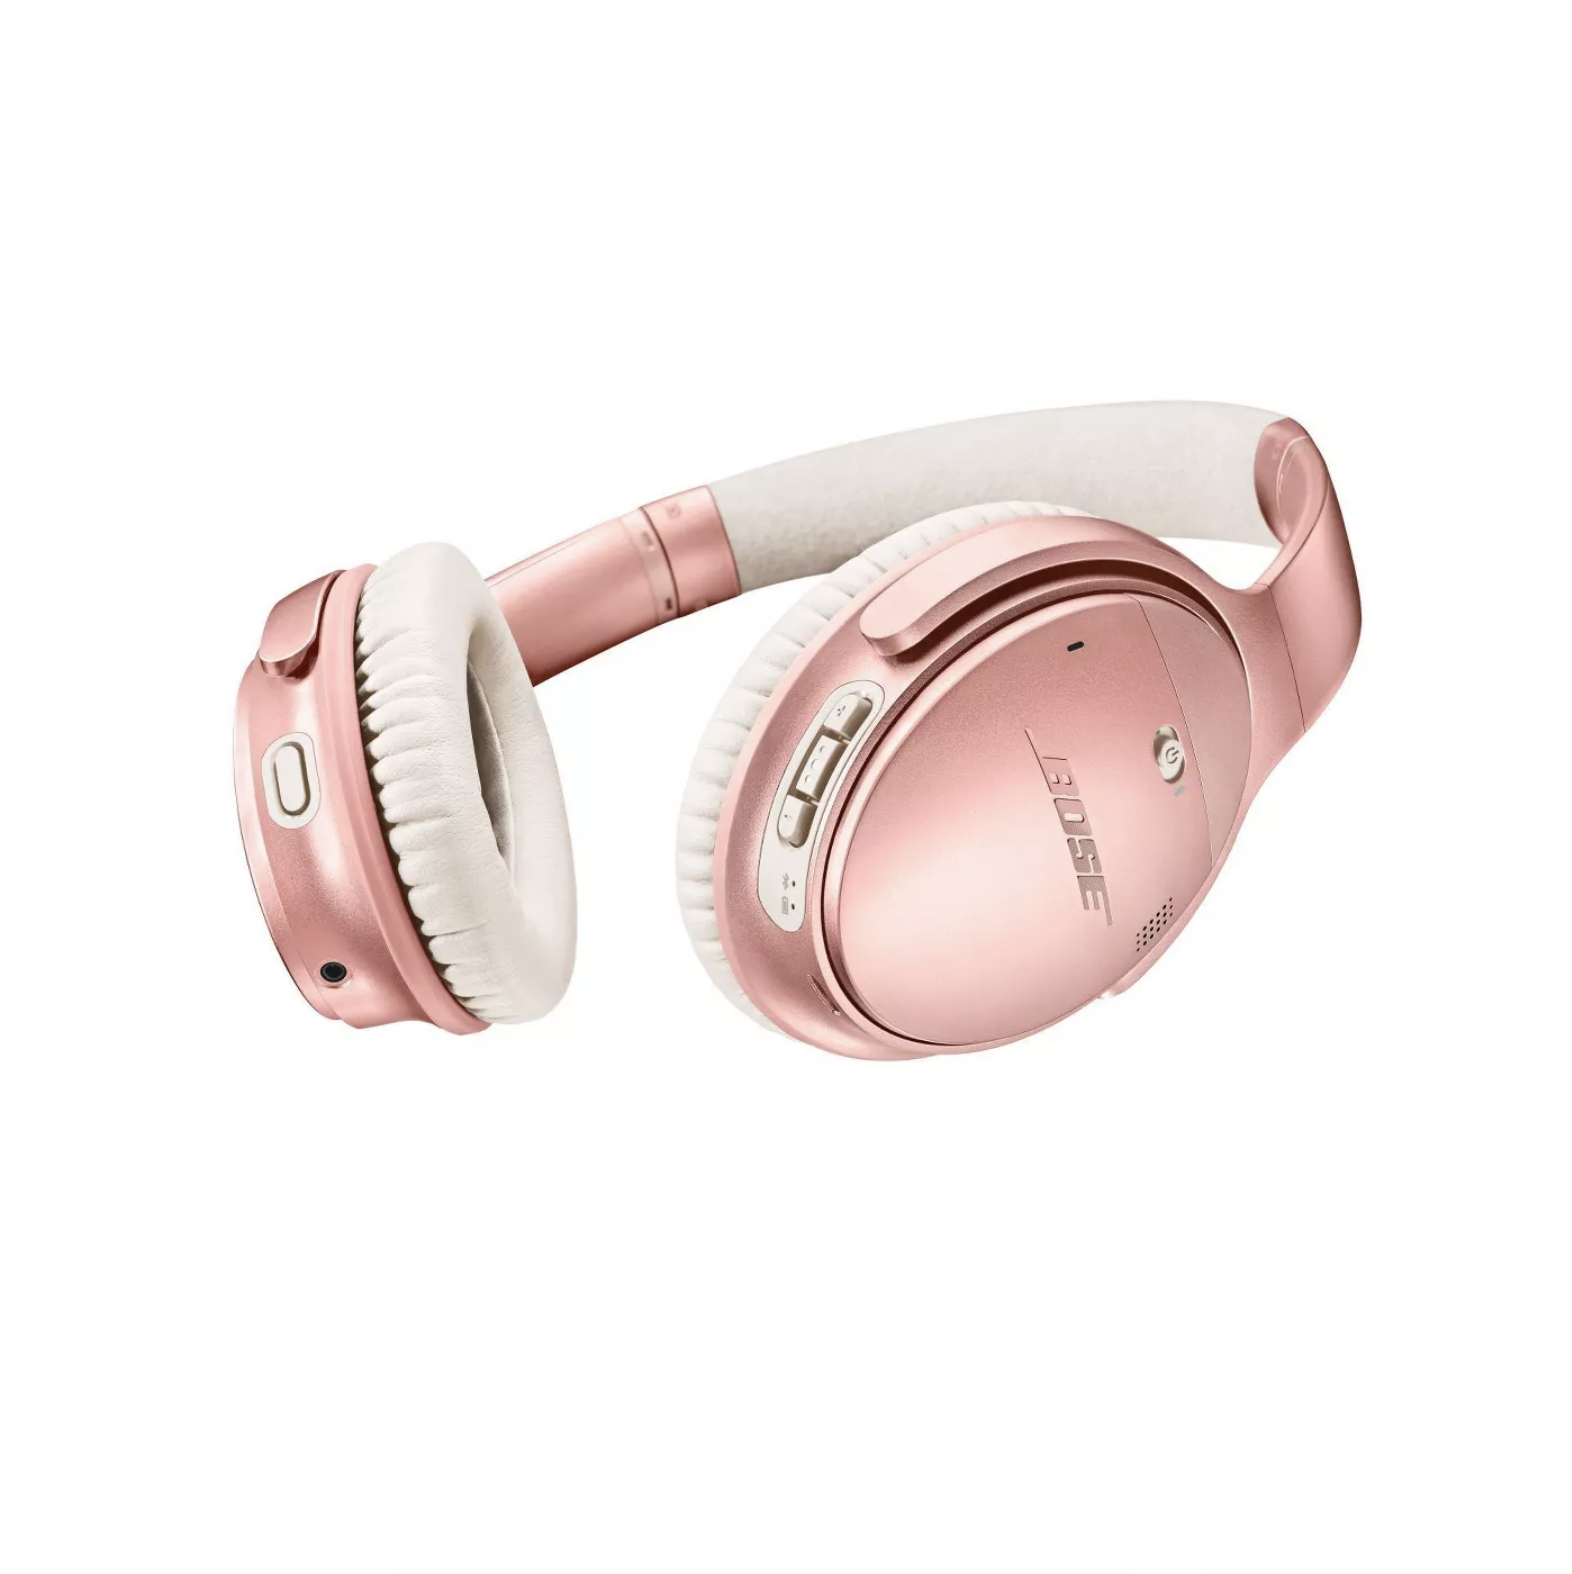 Pink and white noise-canceling headphones isolated on a white background